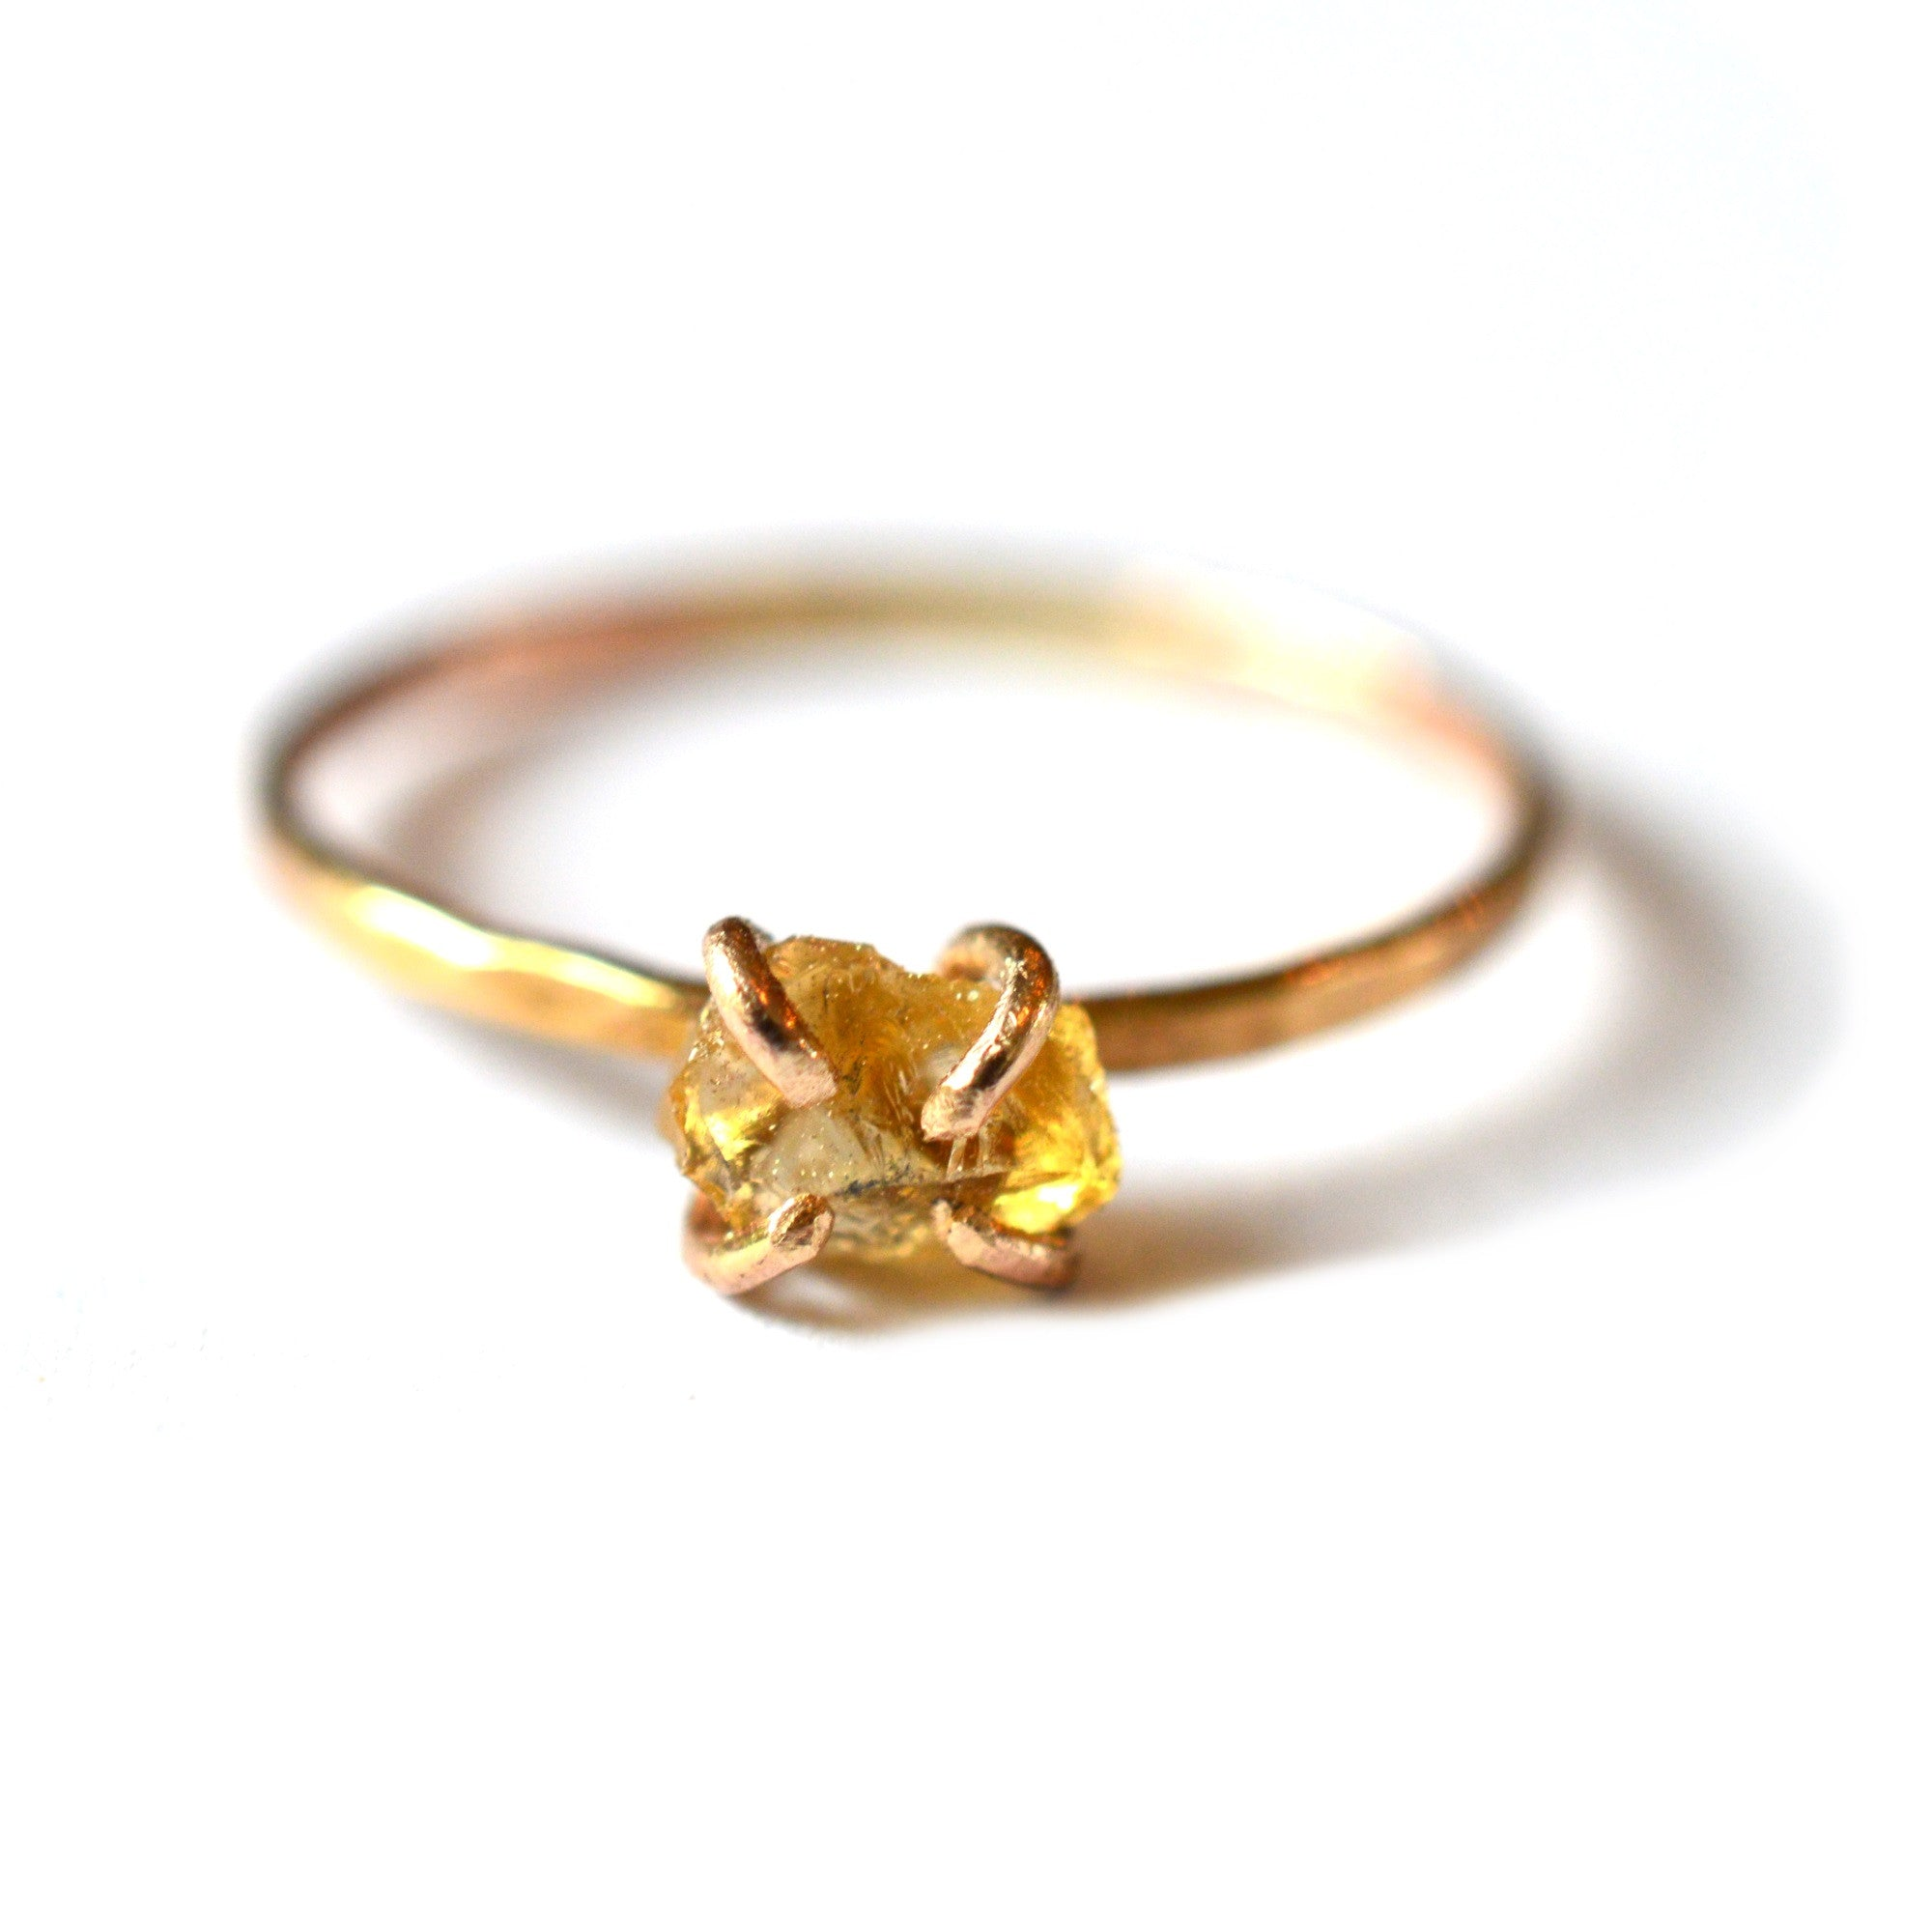 ring engagement yellow emerald wedding rings unique solid pin birthstone brown vintage may gold diamond raw halo